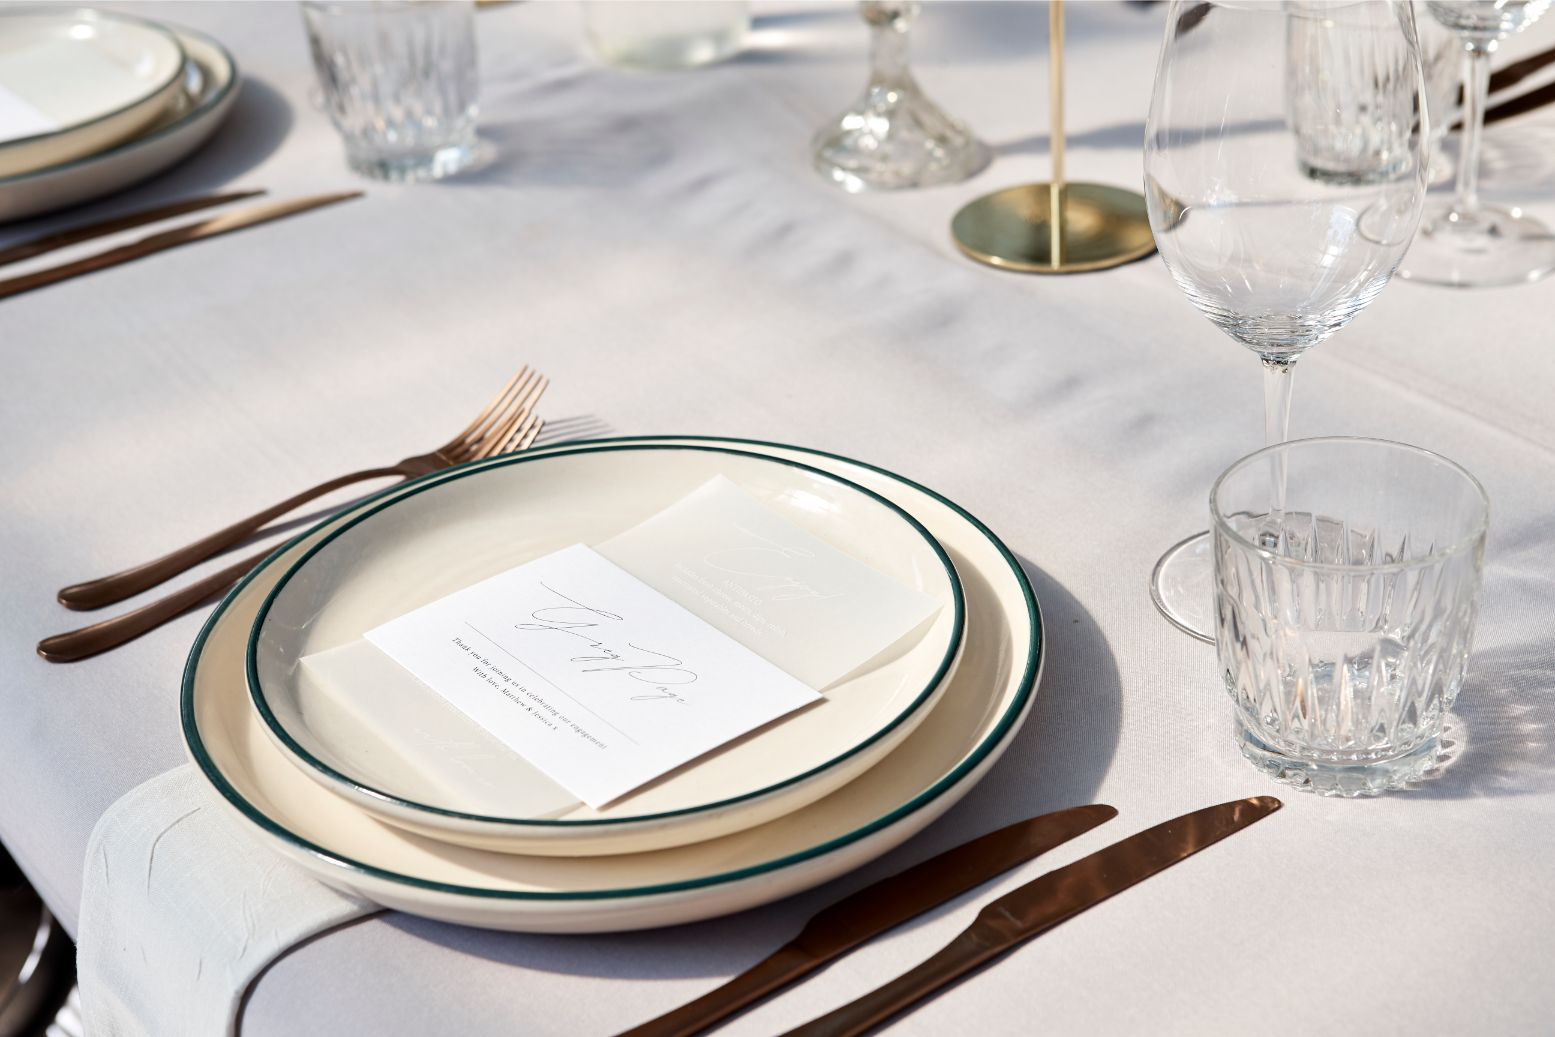 wedding stationery designer menus place cards invites